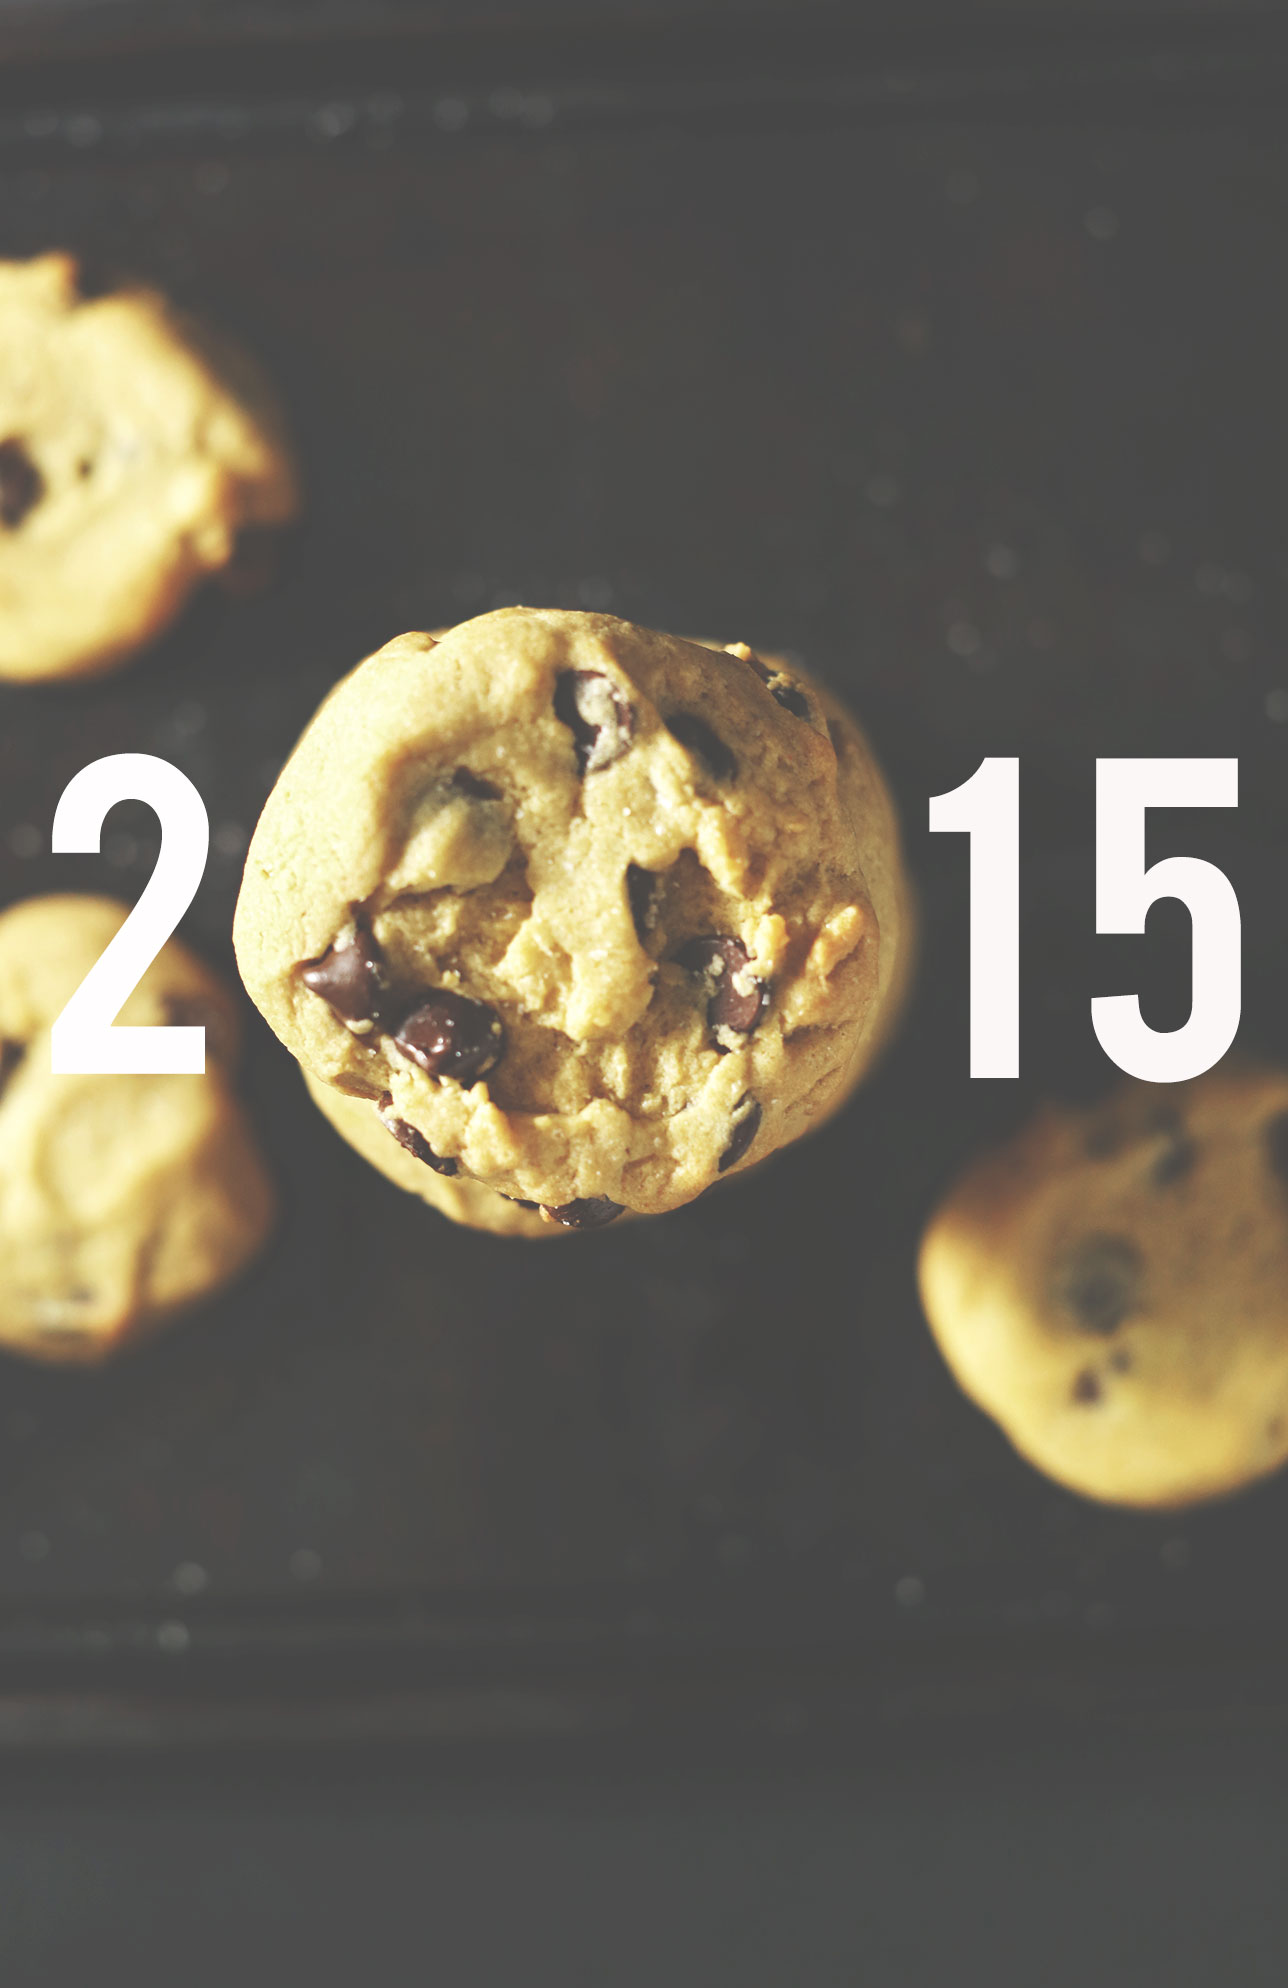 Photo of cookies as the zero in 2015